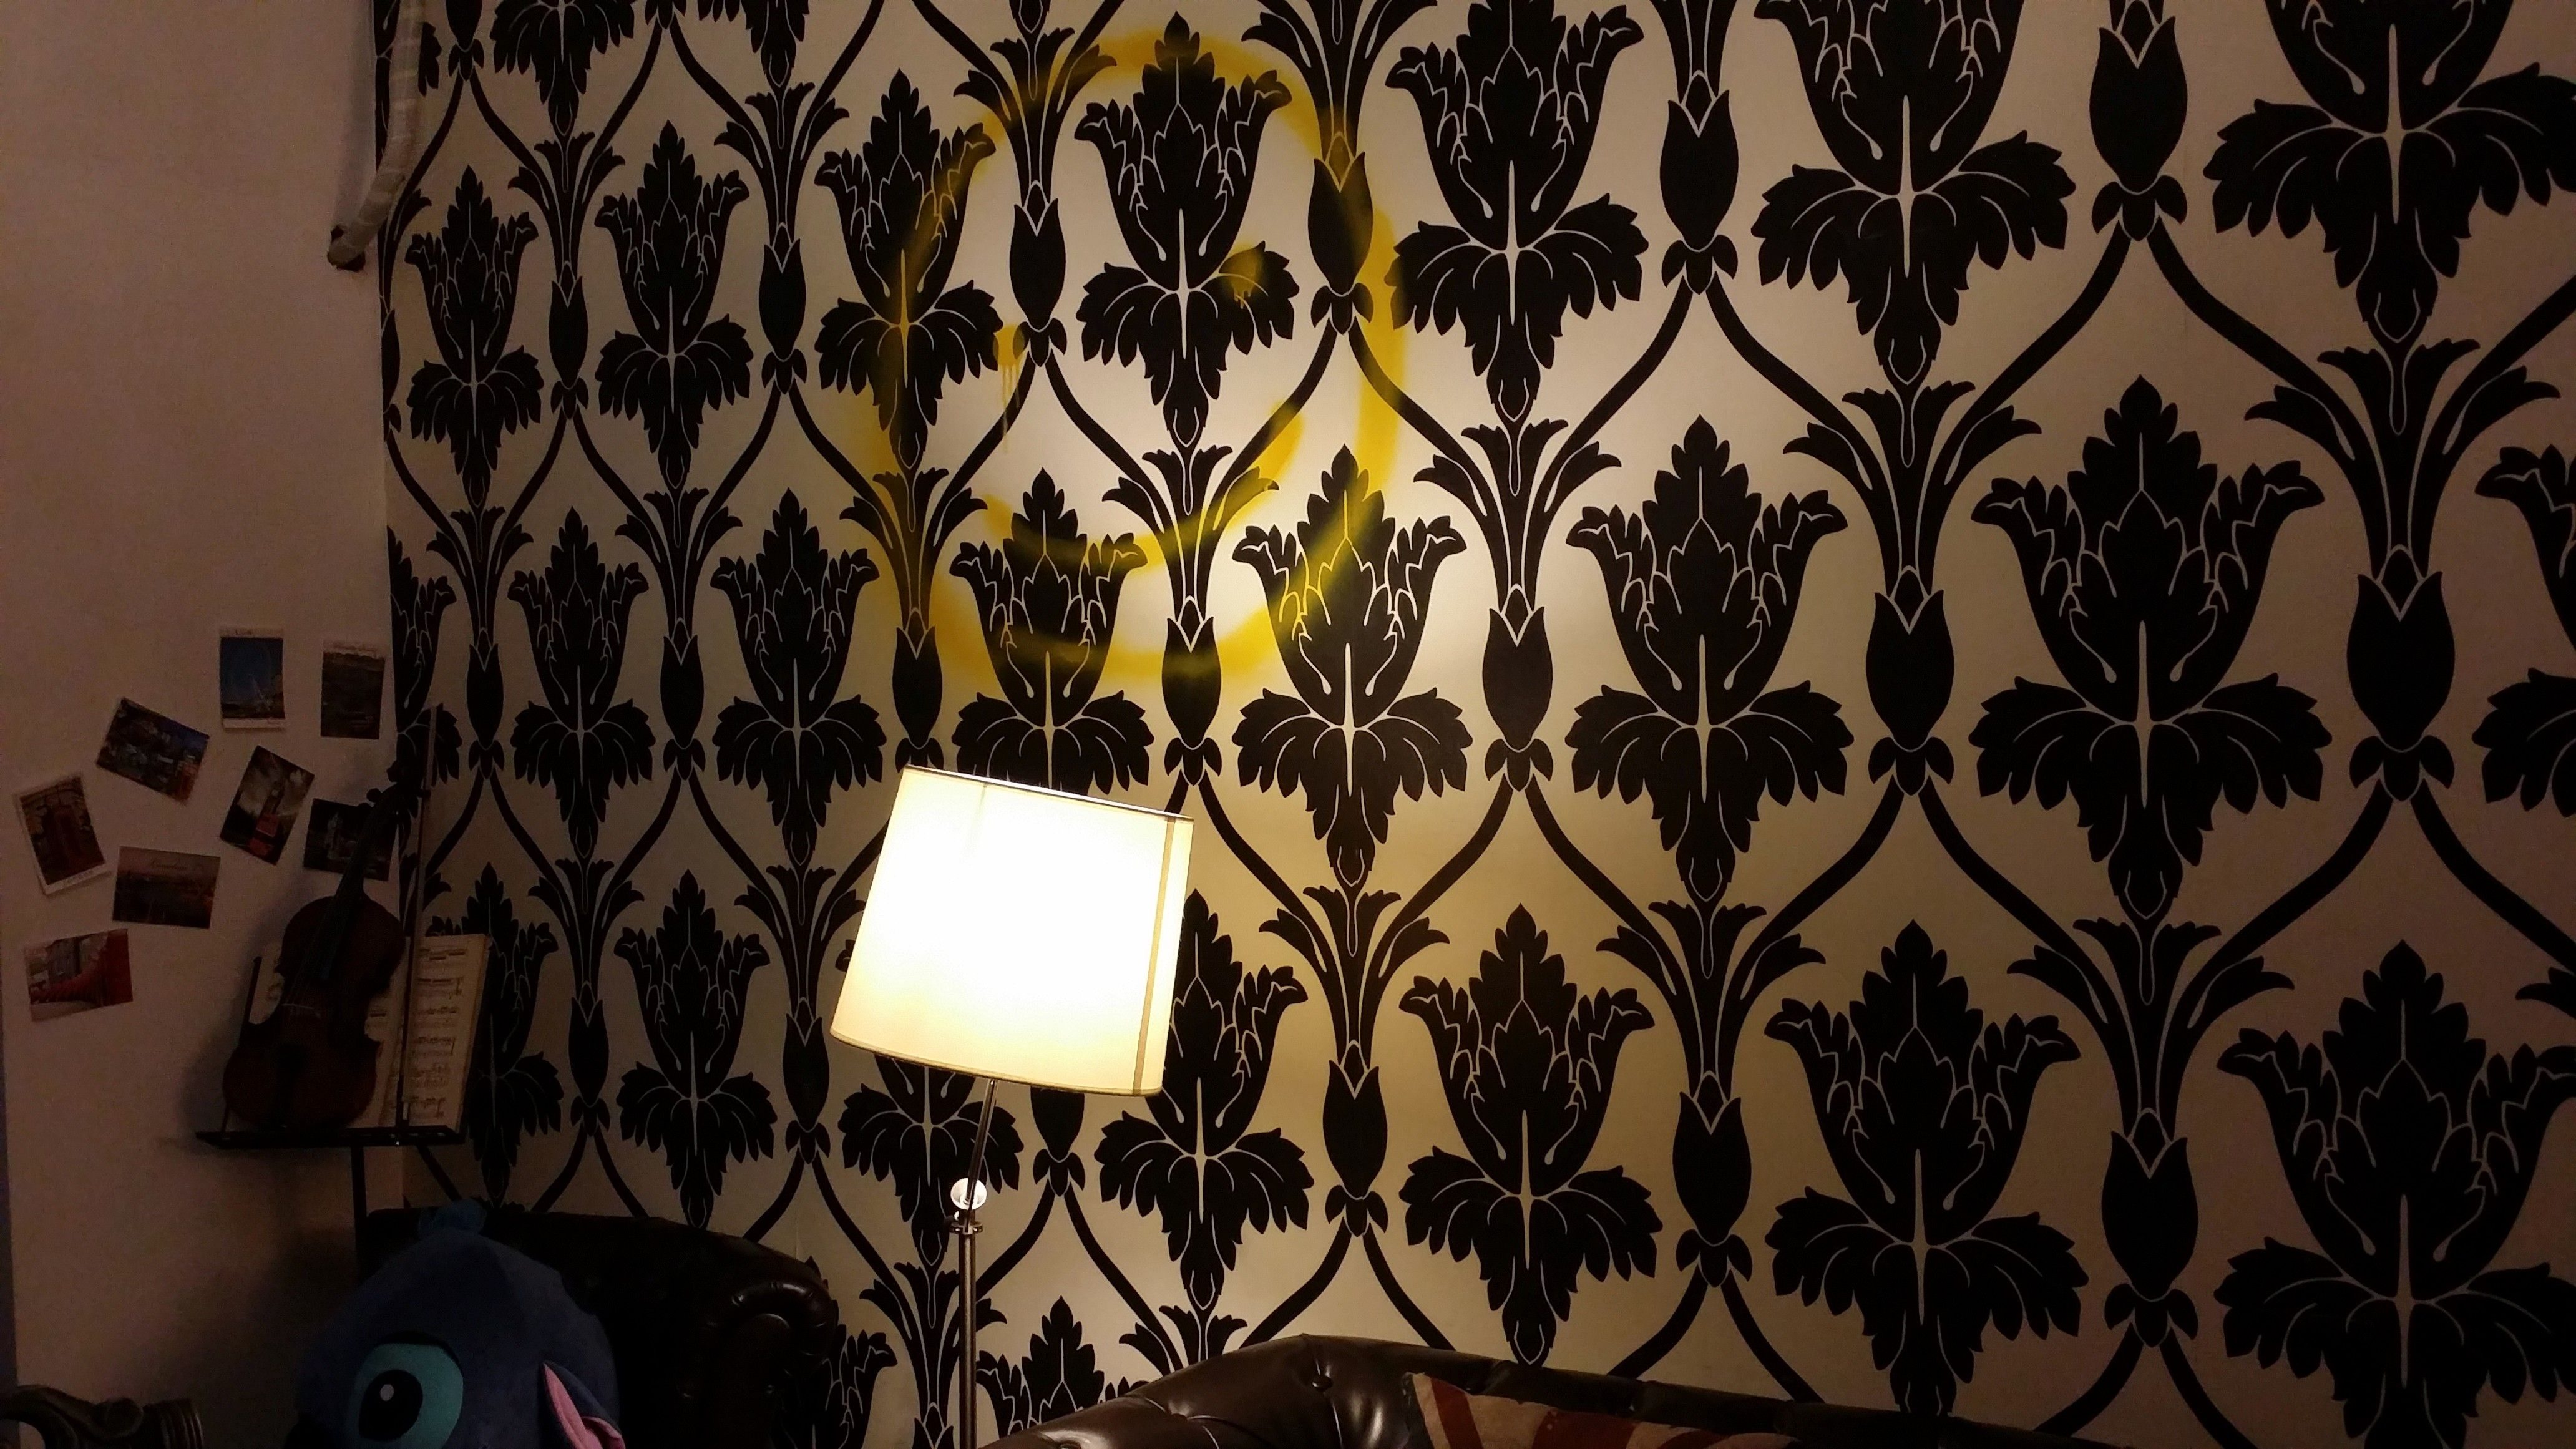 I may want to decorate my room in honor of Sherlock, like this